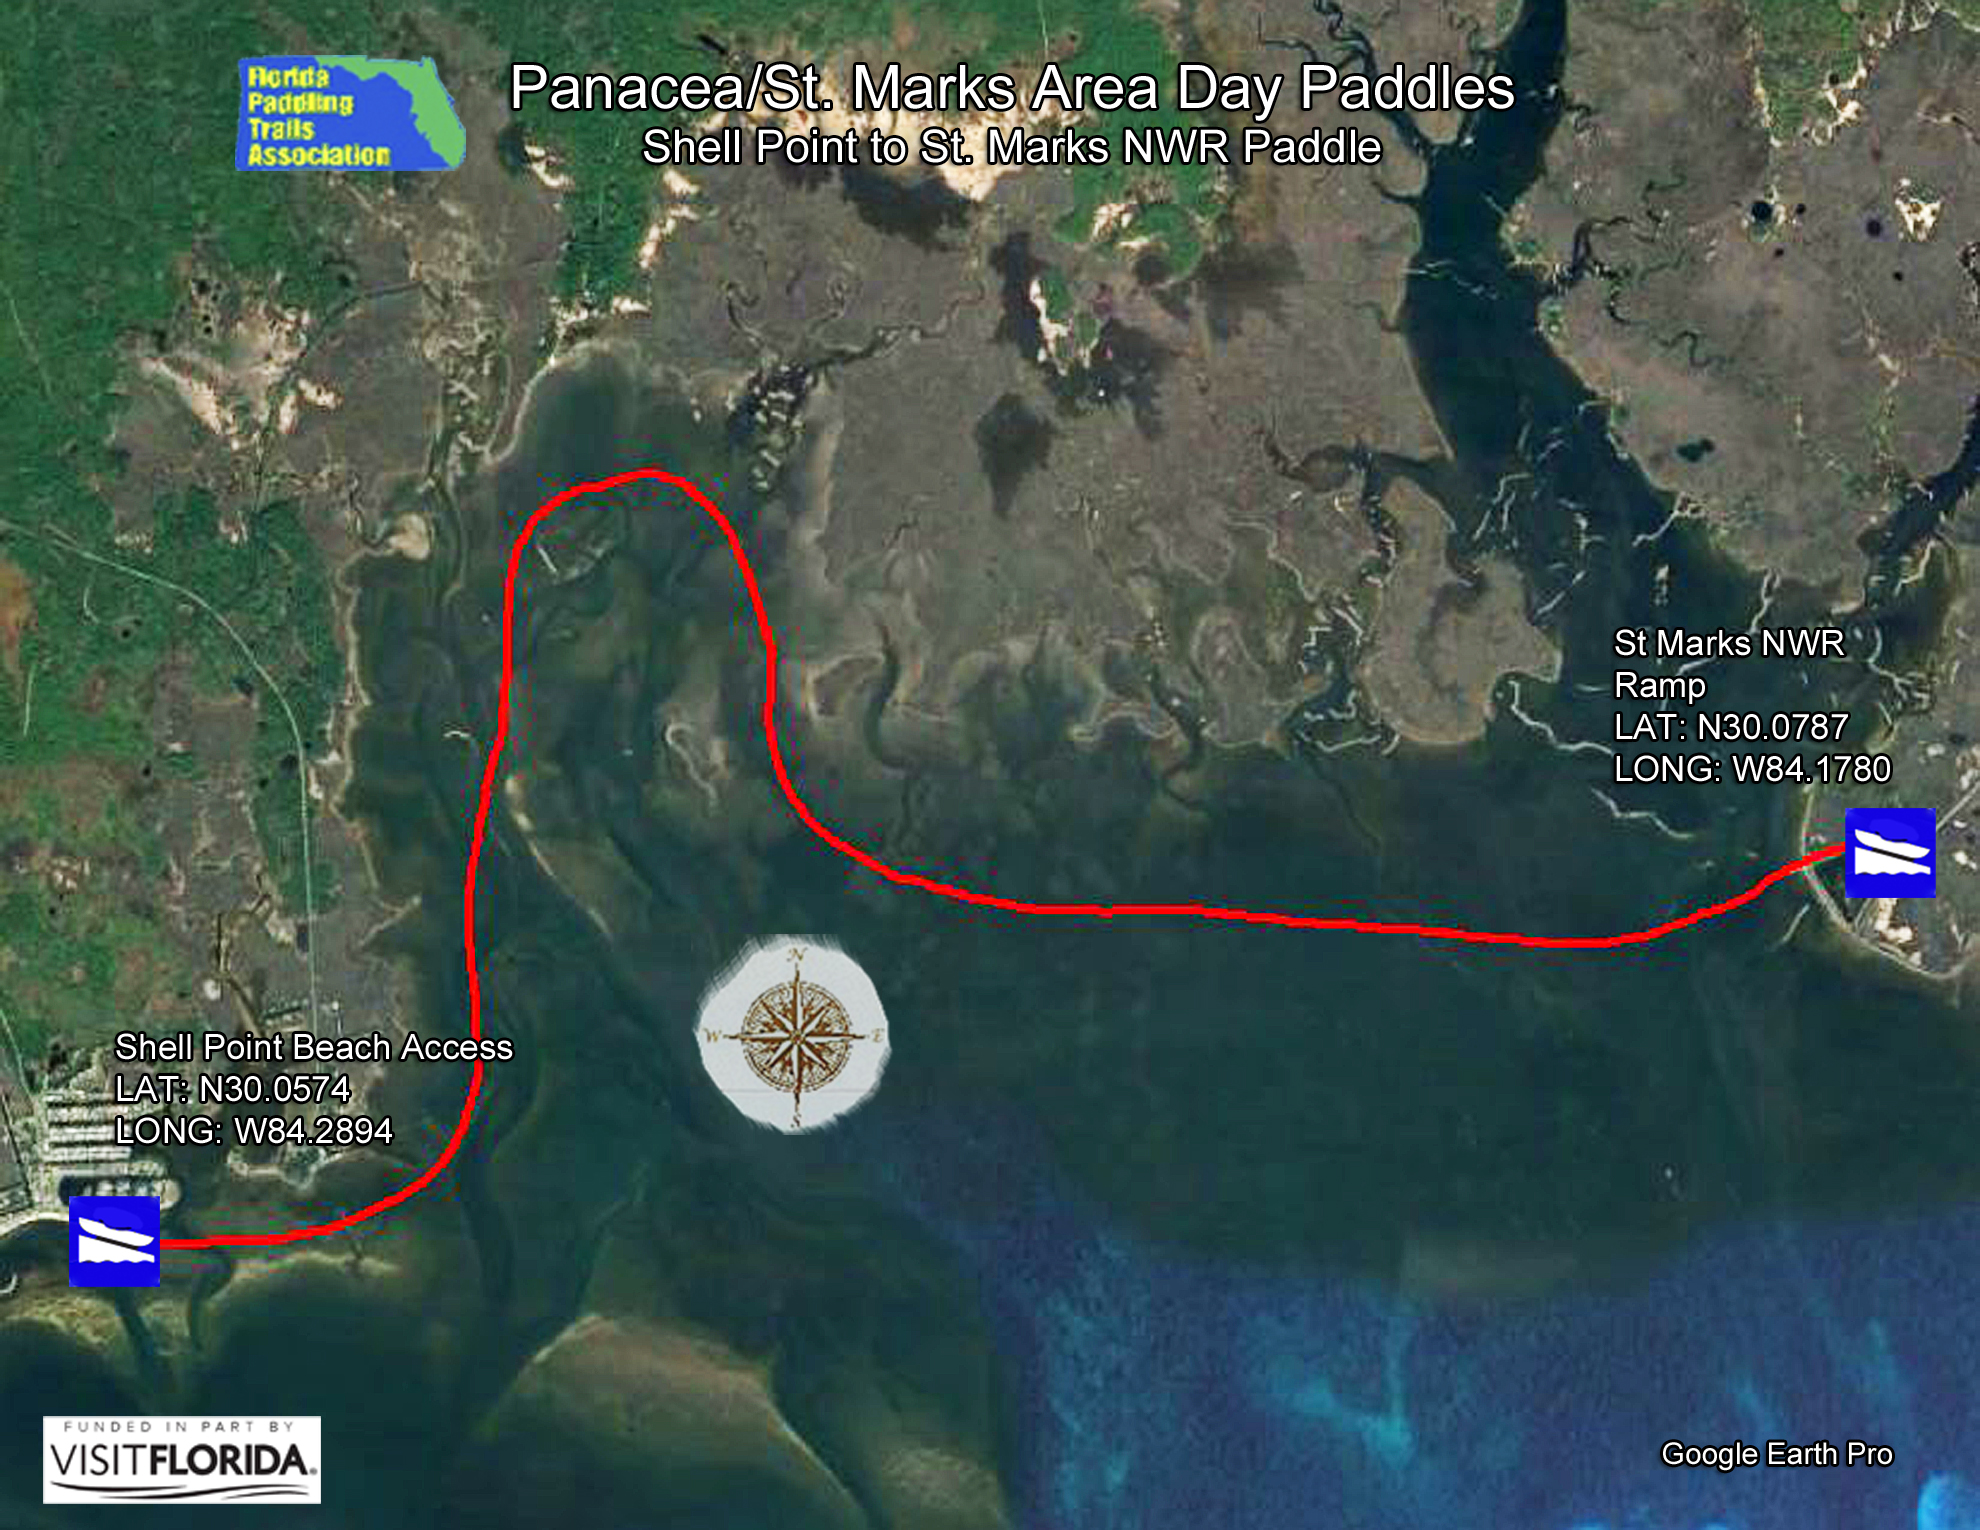 Shell Point Florida Map.Florida Saltwater Circumnavigation Paddling Trail